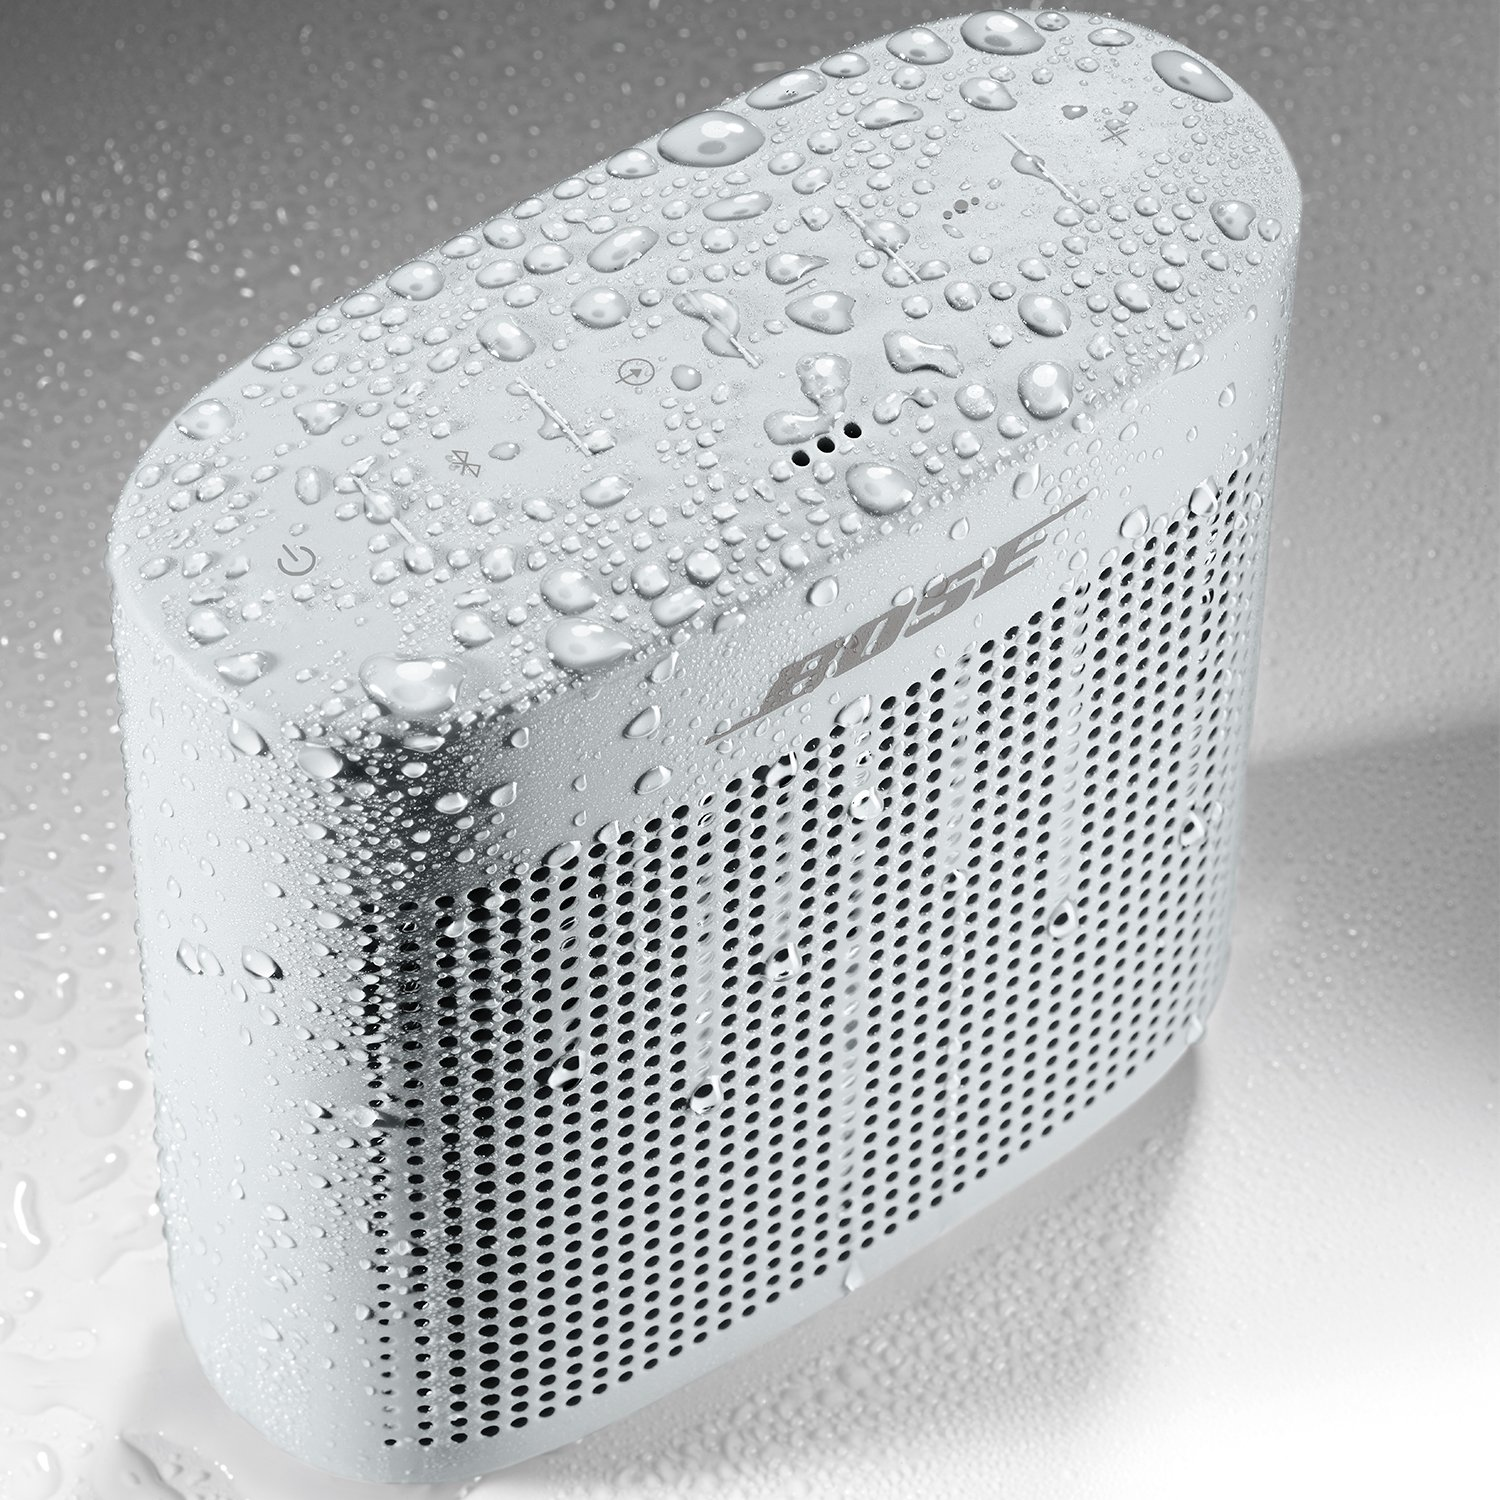 Bose SoundLink Color Bluetooth Speaker II - Polar White by Bose (Image #6)